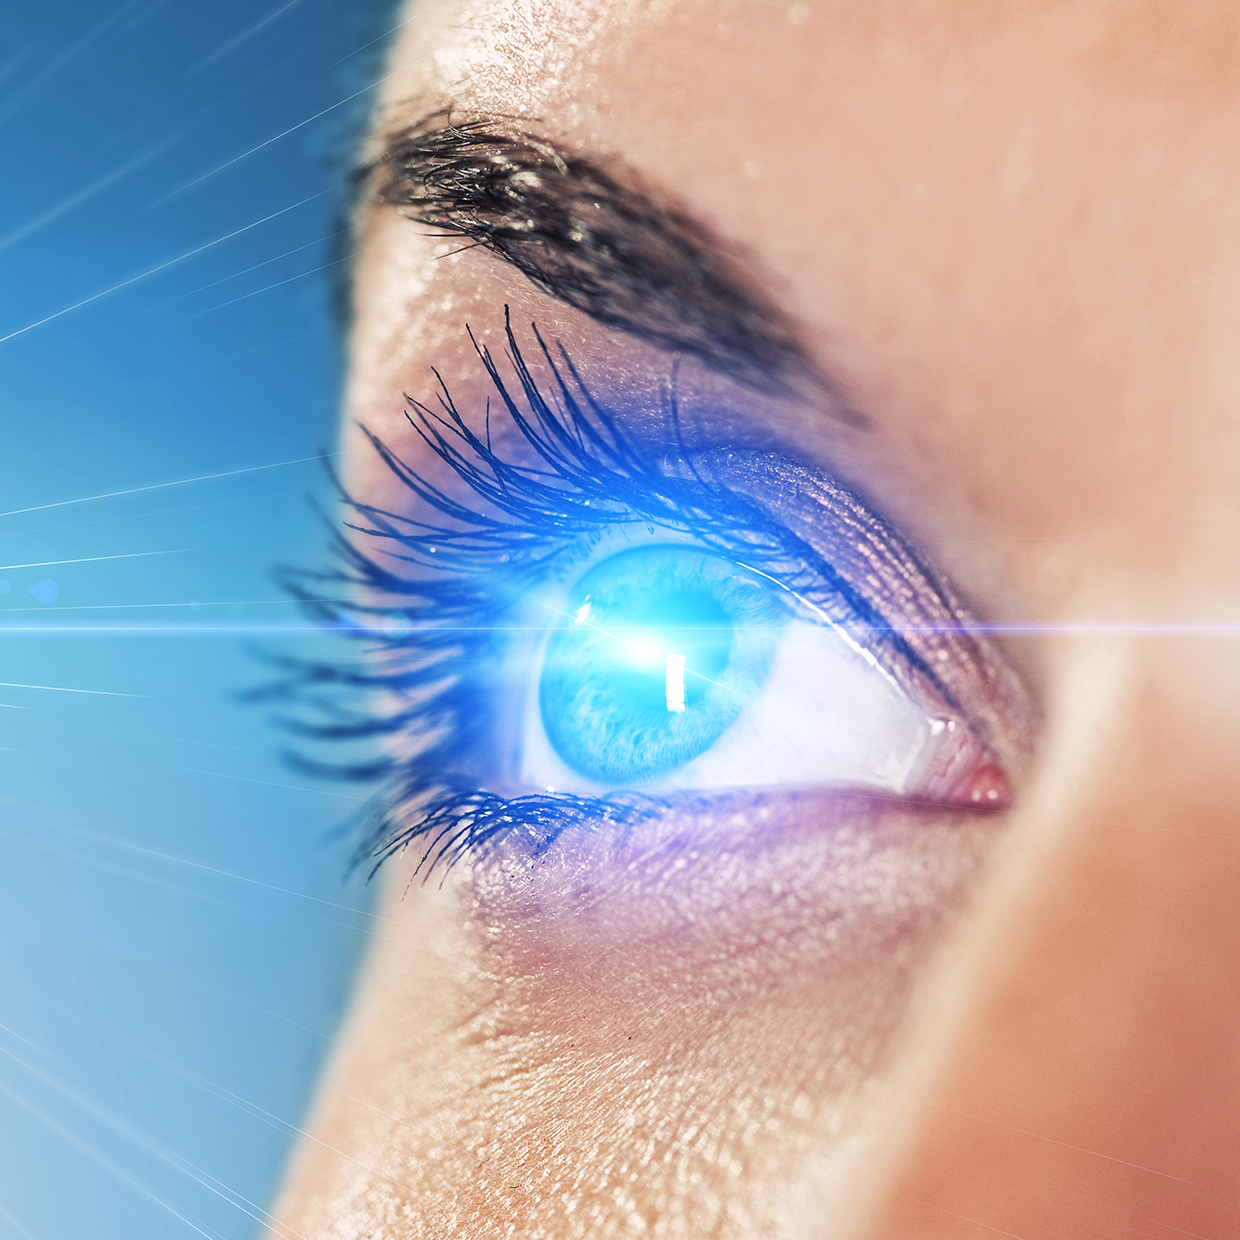 Blue light: is it harming my vision?